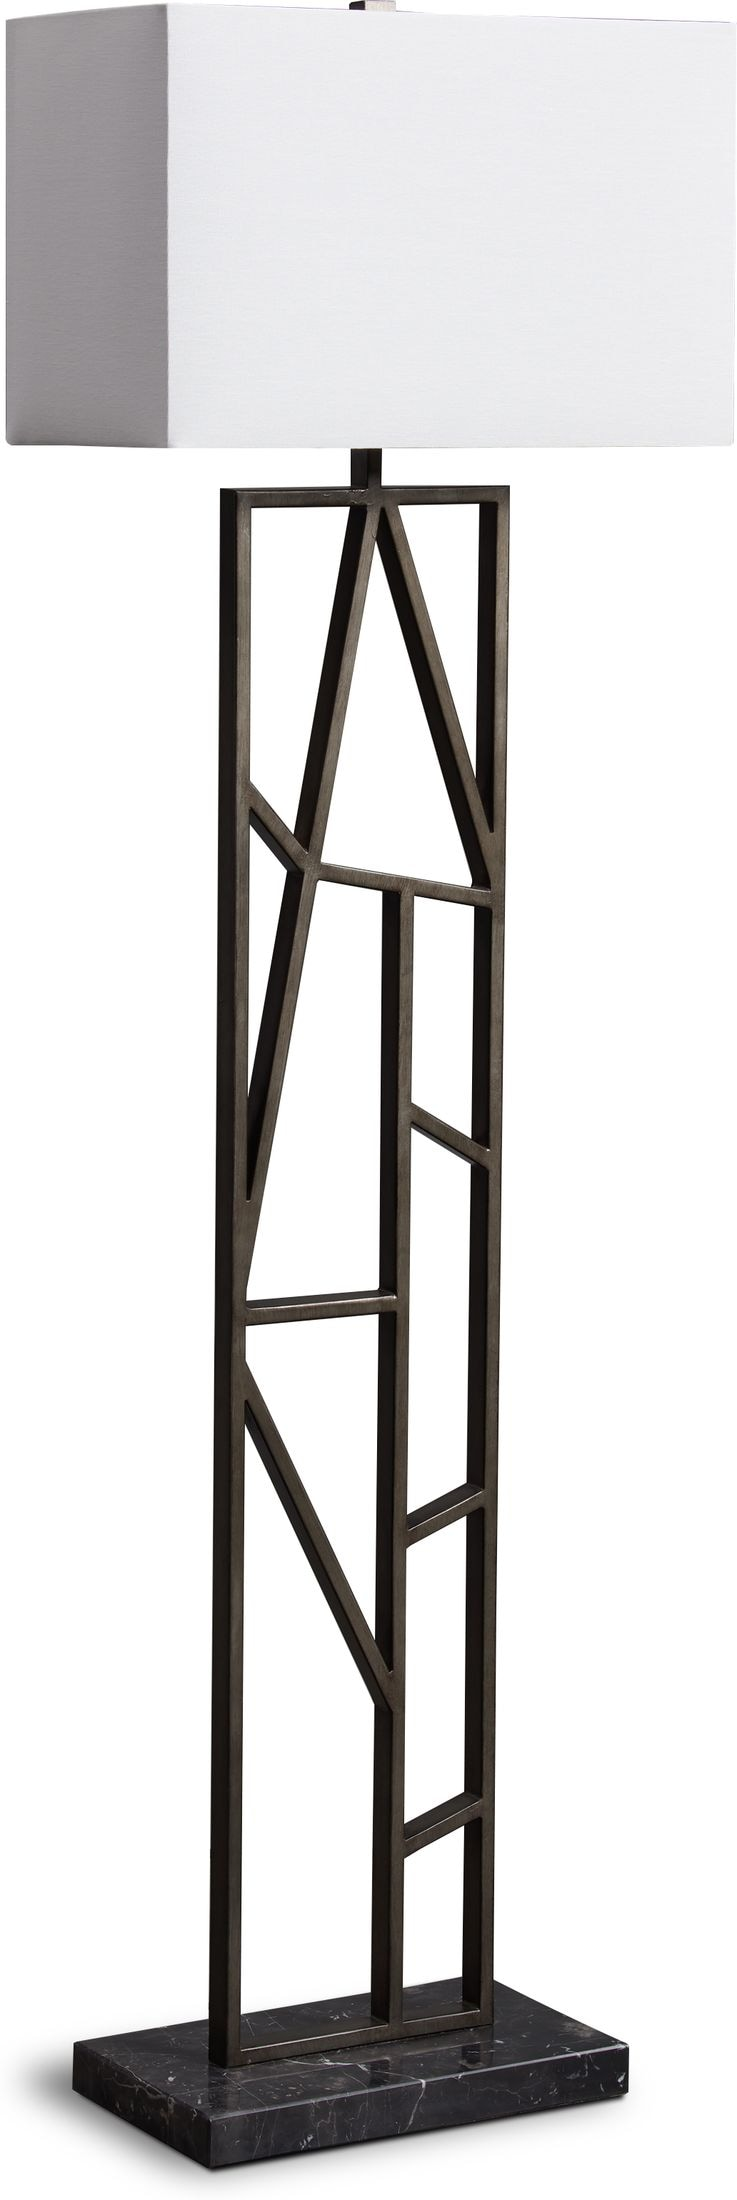 Home Accessories - Quin Floor Lamp